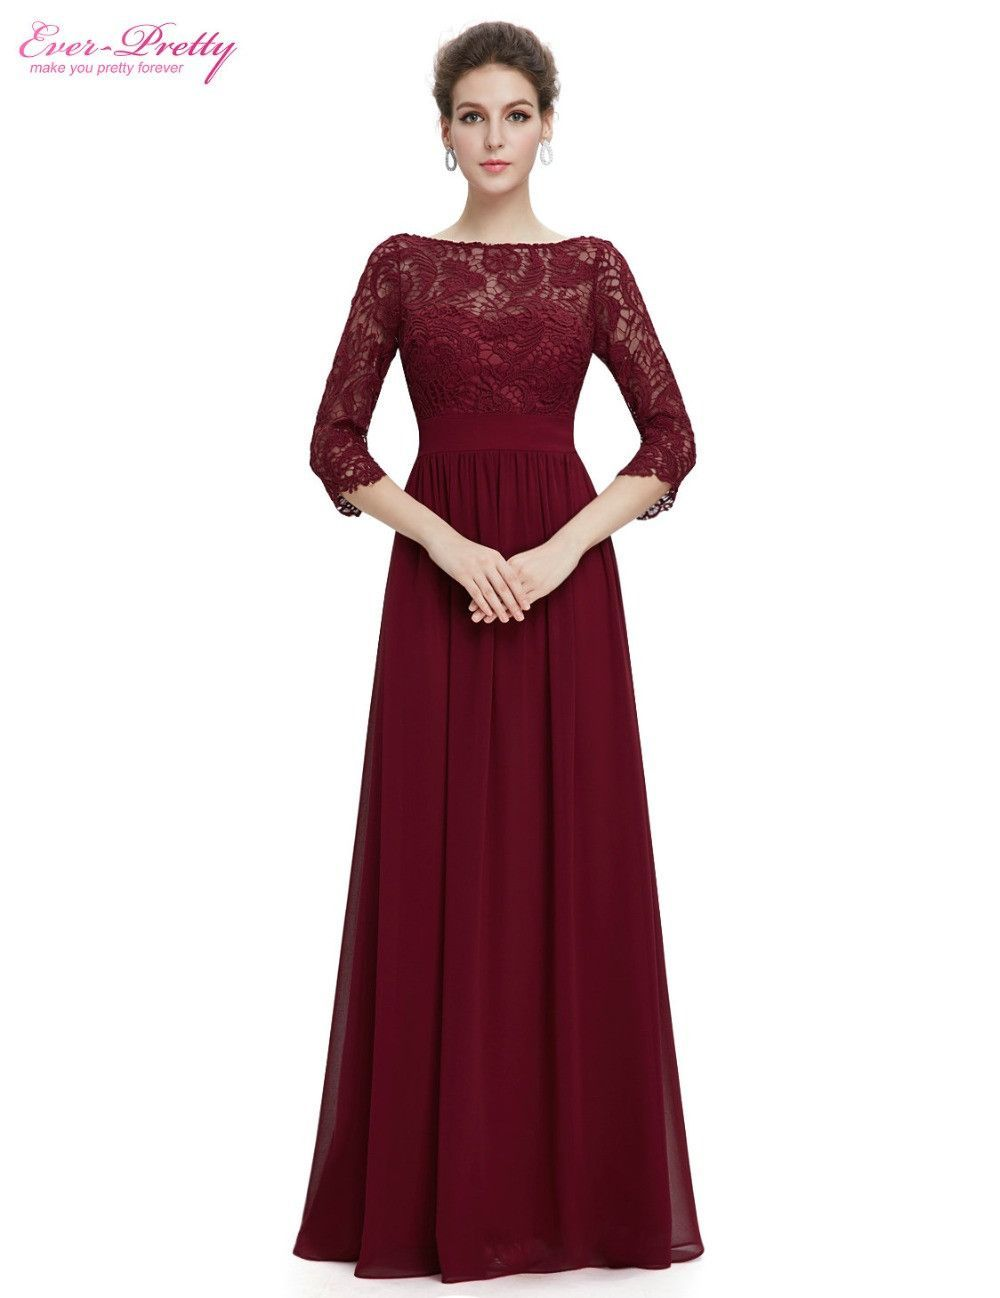 Occasion  Formal Evening Item Type  Evening Dresses Waistline  Empire  is customized  No Fabric Type  Satin Dresses Length  Floor-Length Neckline   O-Neck ... ed5a7165421f